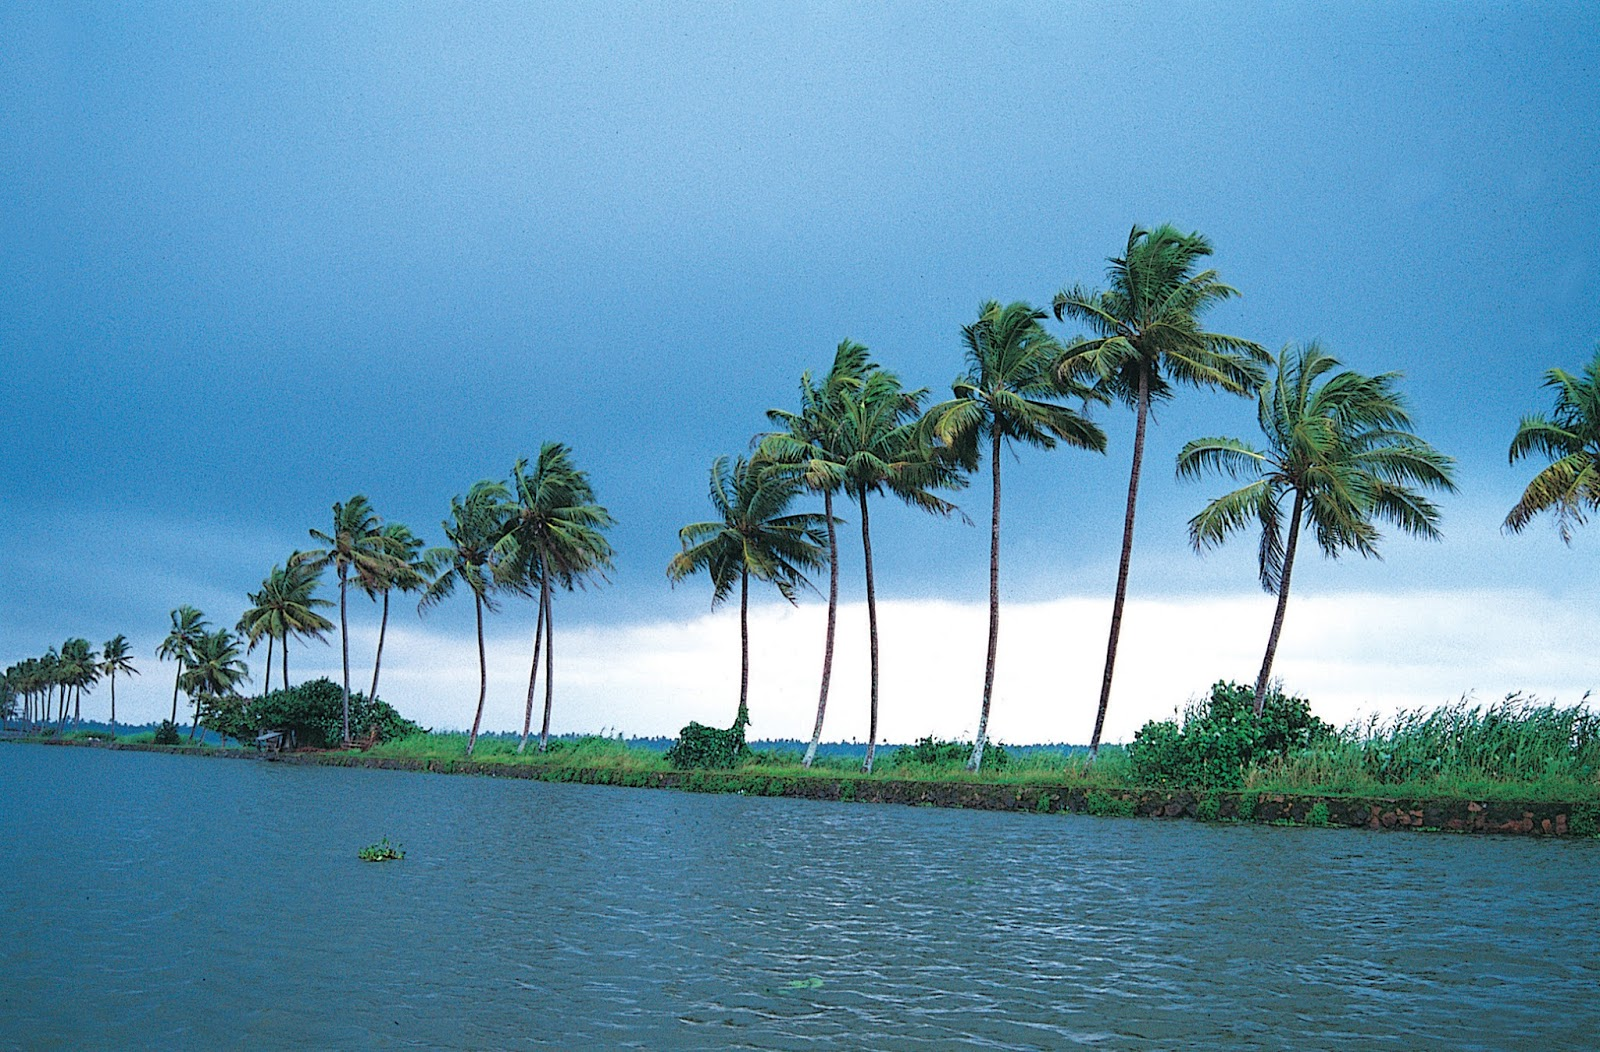 Kerala Backwaters Wallpapers Tourist Places In India Hd Wallpapers Images And Sight View